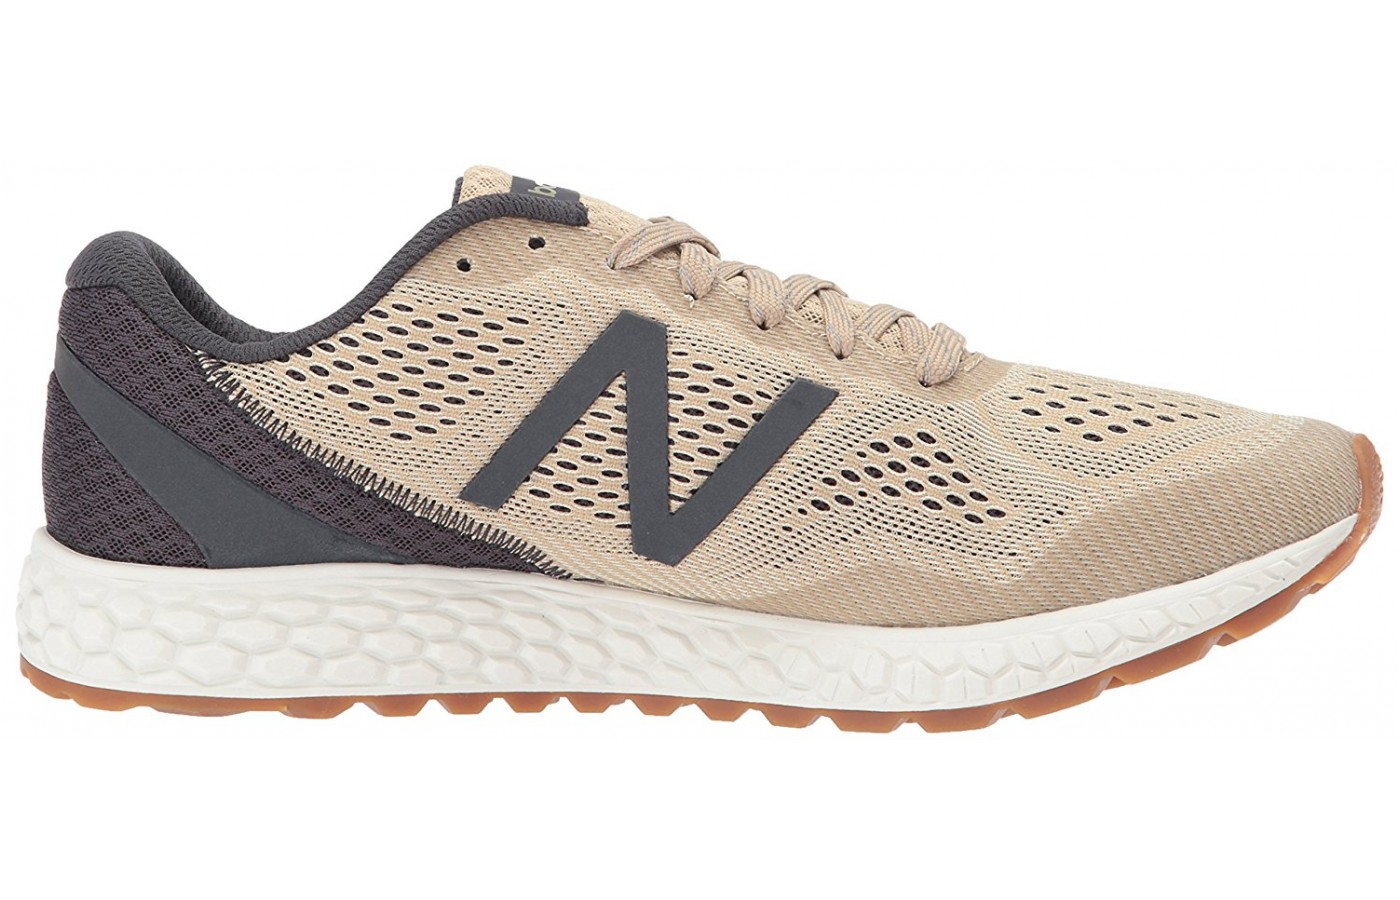 New Balance Fresh Foam Gobi v2 side